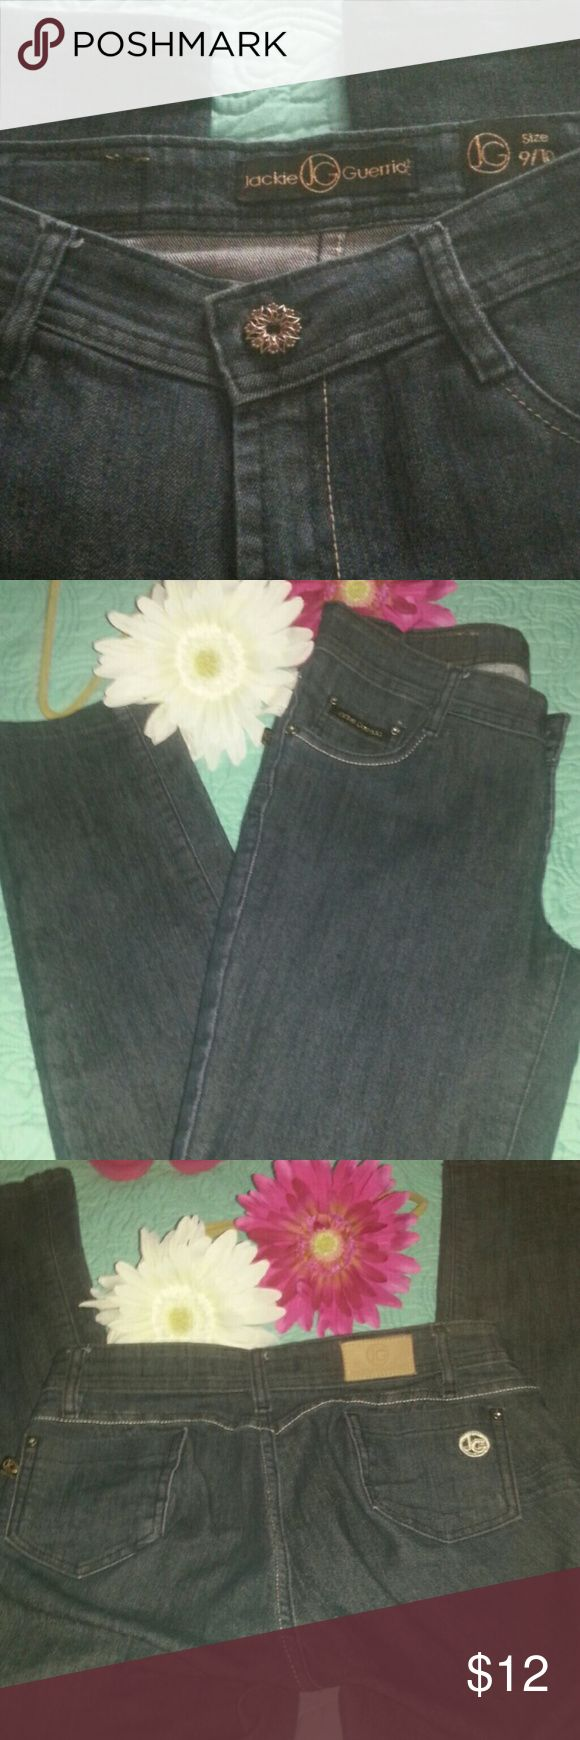 Jackie Guerrido dark wash skinny jeans Like new jeans, inseam 32, roomy rear and lots of stretch Jackie Guerrido Jeans Skinny